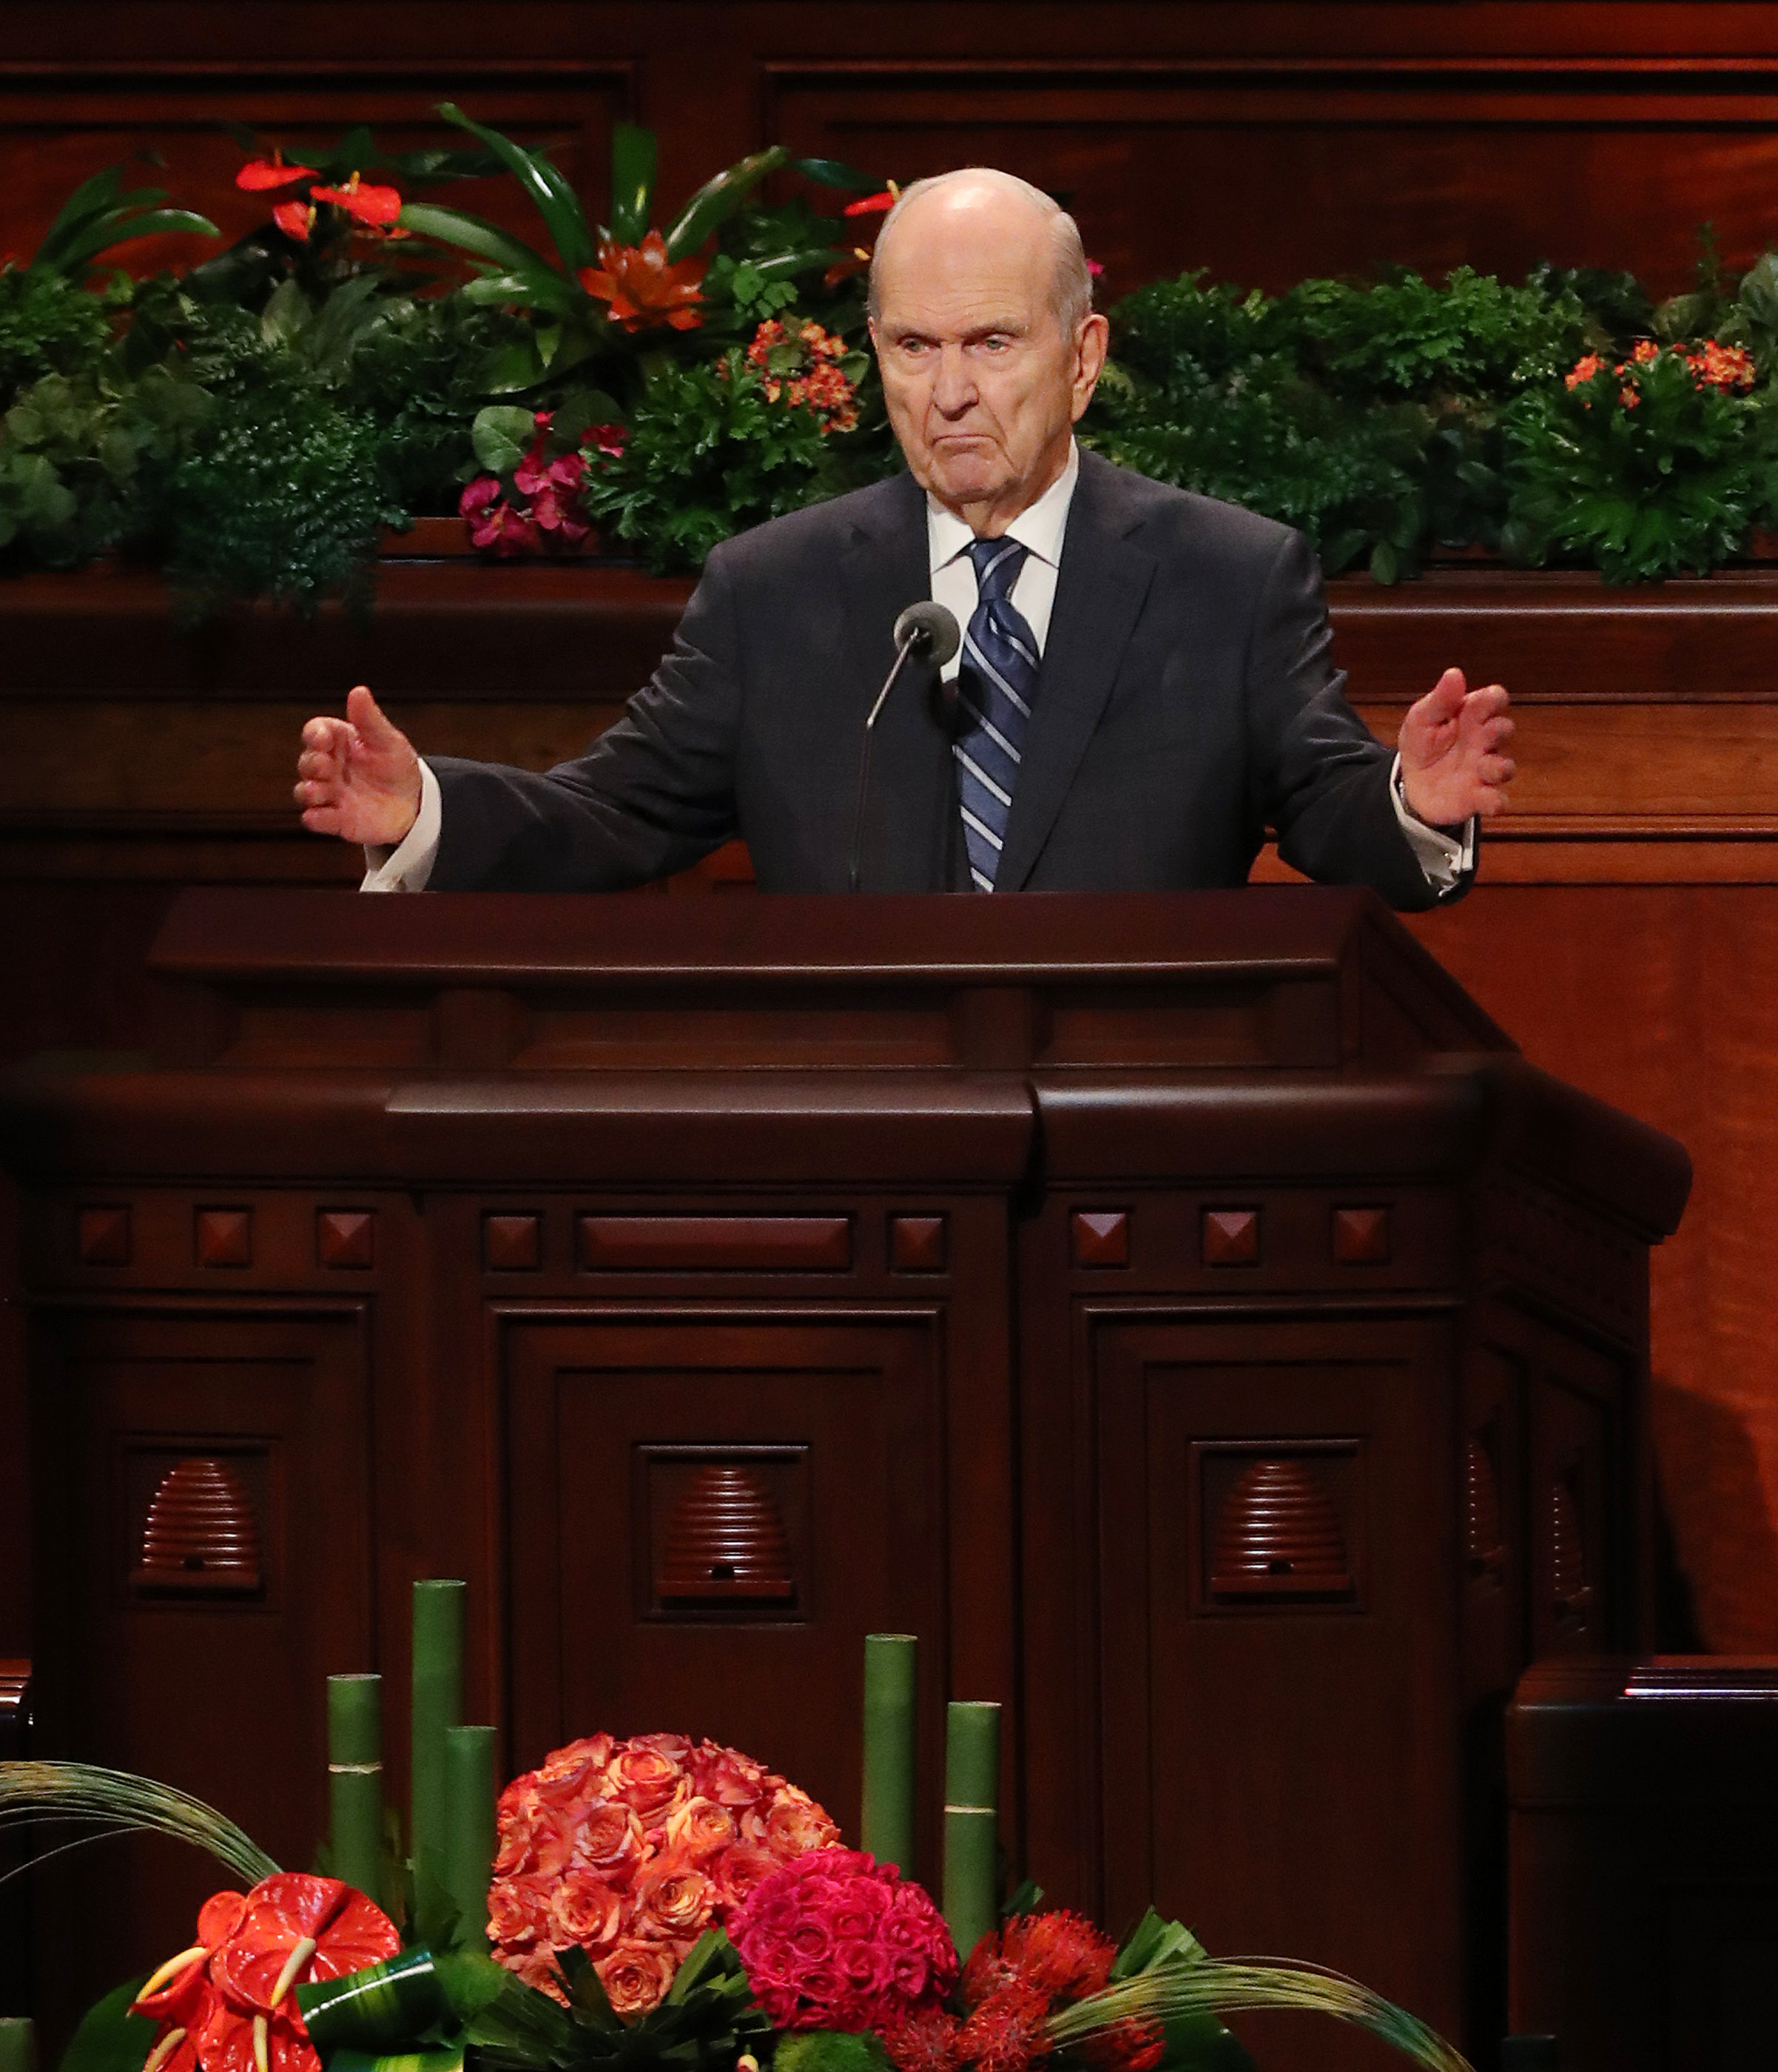 President Russell M. Nelson of The Church of Jesus Christ of Latter-day Saints speaks during the 188th Semiannual General Conference of The Church of Jesus Christ of Latter-day Saints in Salt Lake City on Sunday, Oct. 7, 2018.